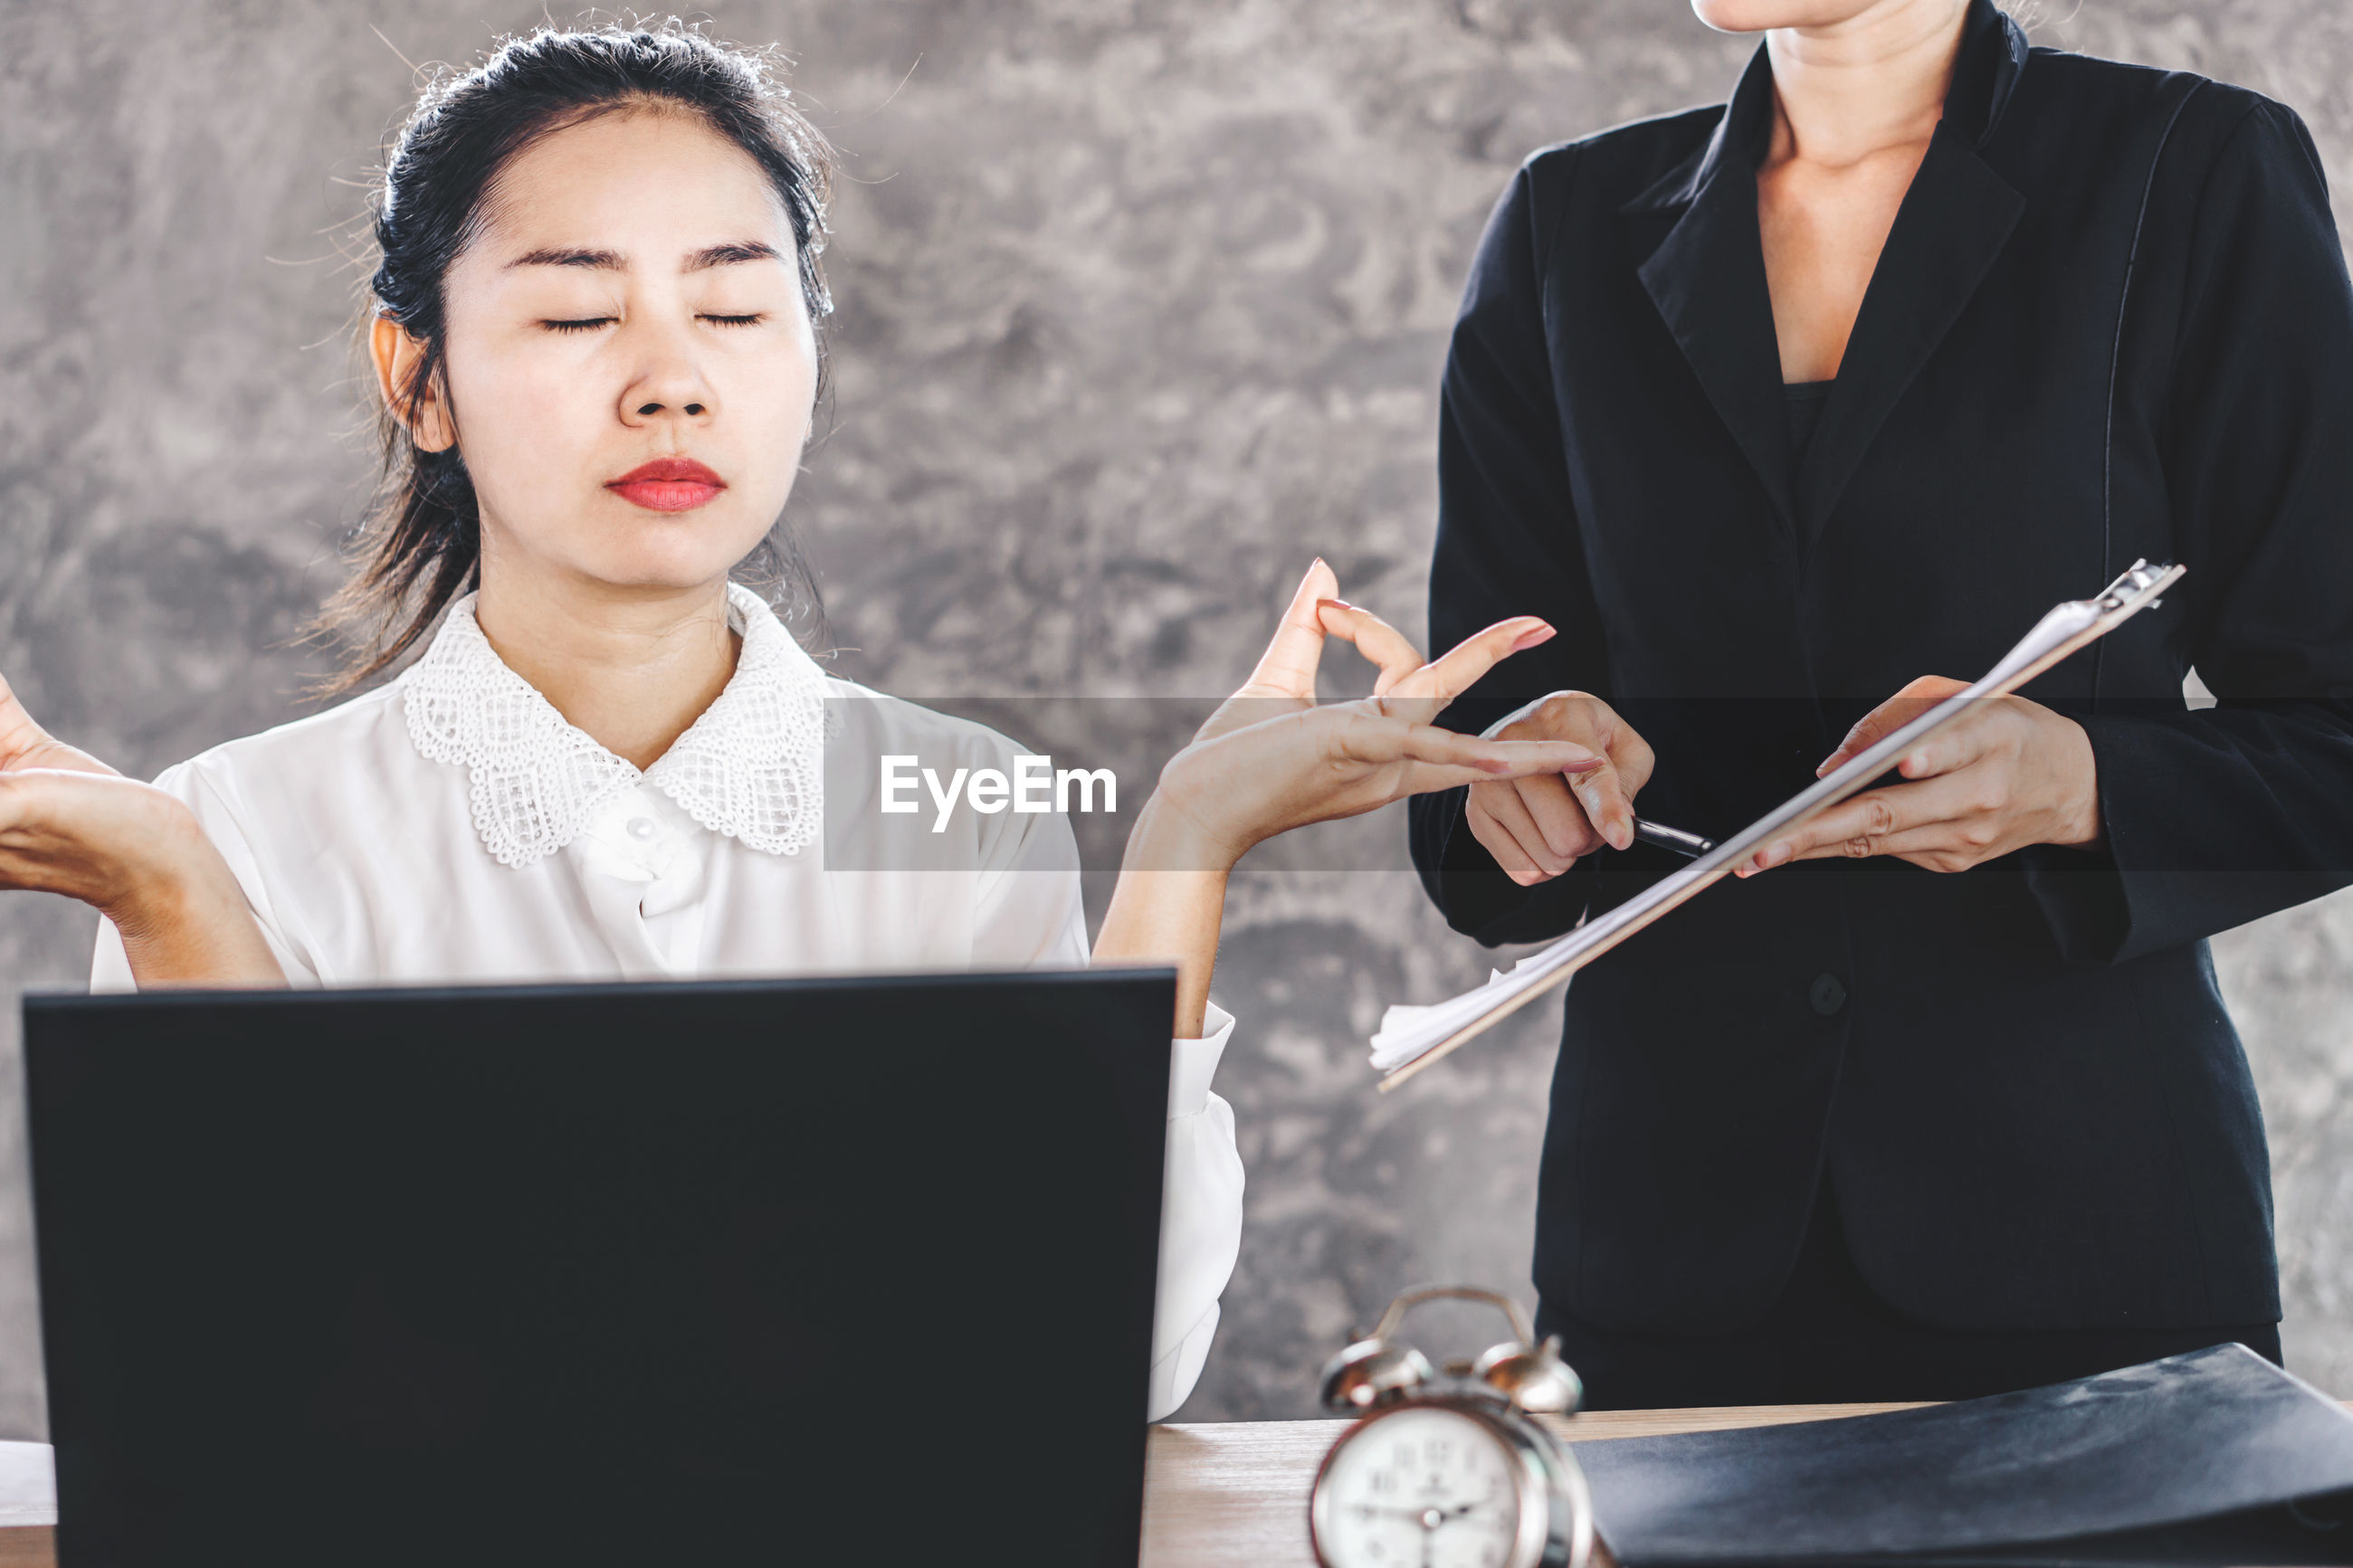 Businesswoman gesturing while boss holding document